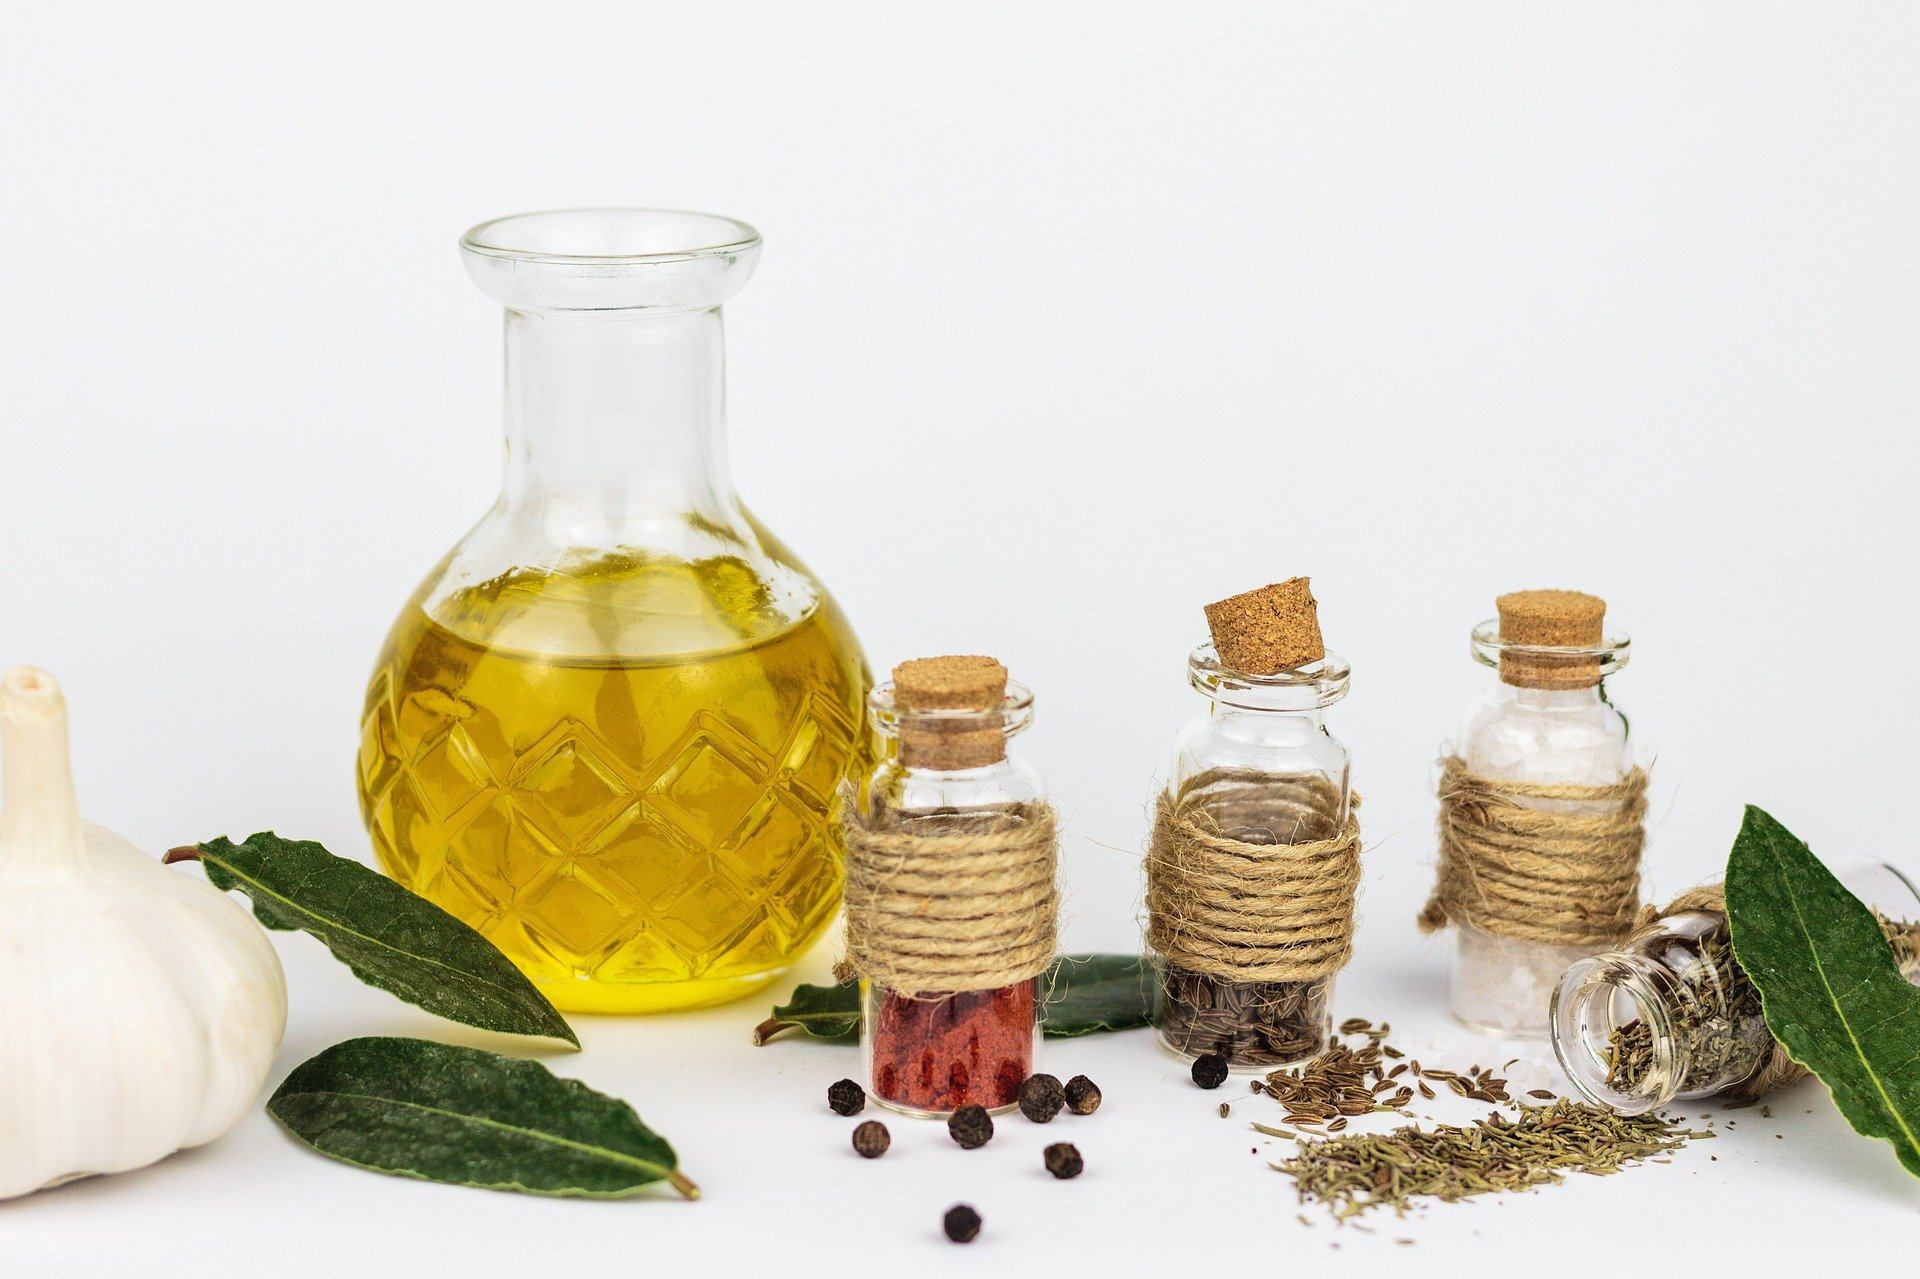 Crude Tall Oil Derivative Market By Type (Tall Oil Fatty Acid, Distilled Tall  Oil, Tall Oil Rosins, Pitch and Bio-oils), By Application (Automotive,  Chemical, Oil and Gas), Regional Outlook, Competitive Landscape, Market